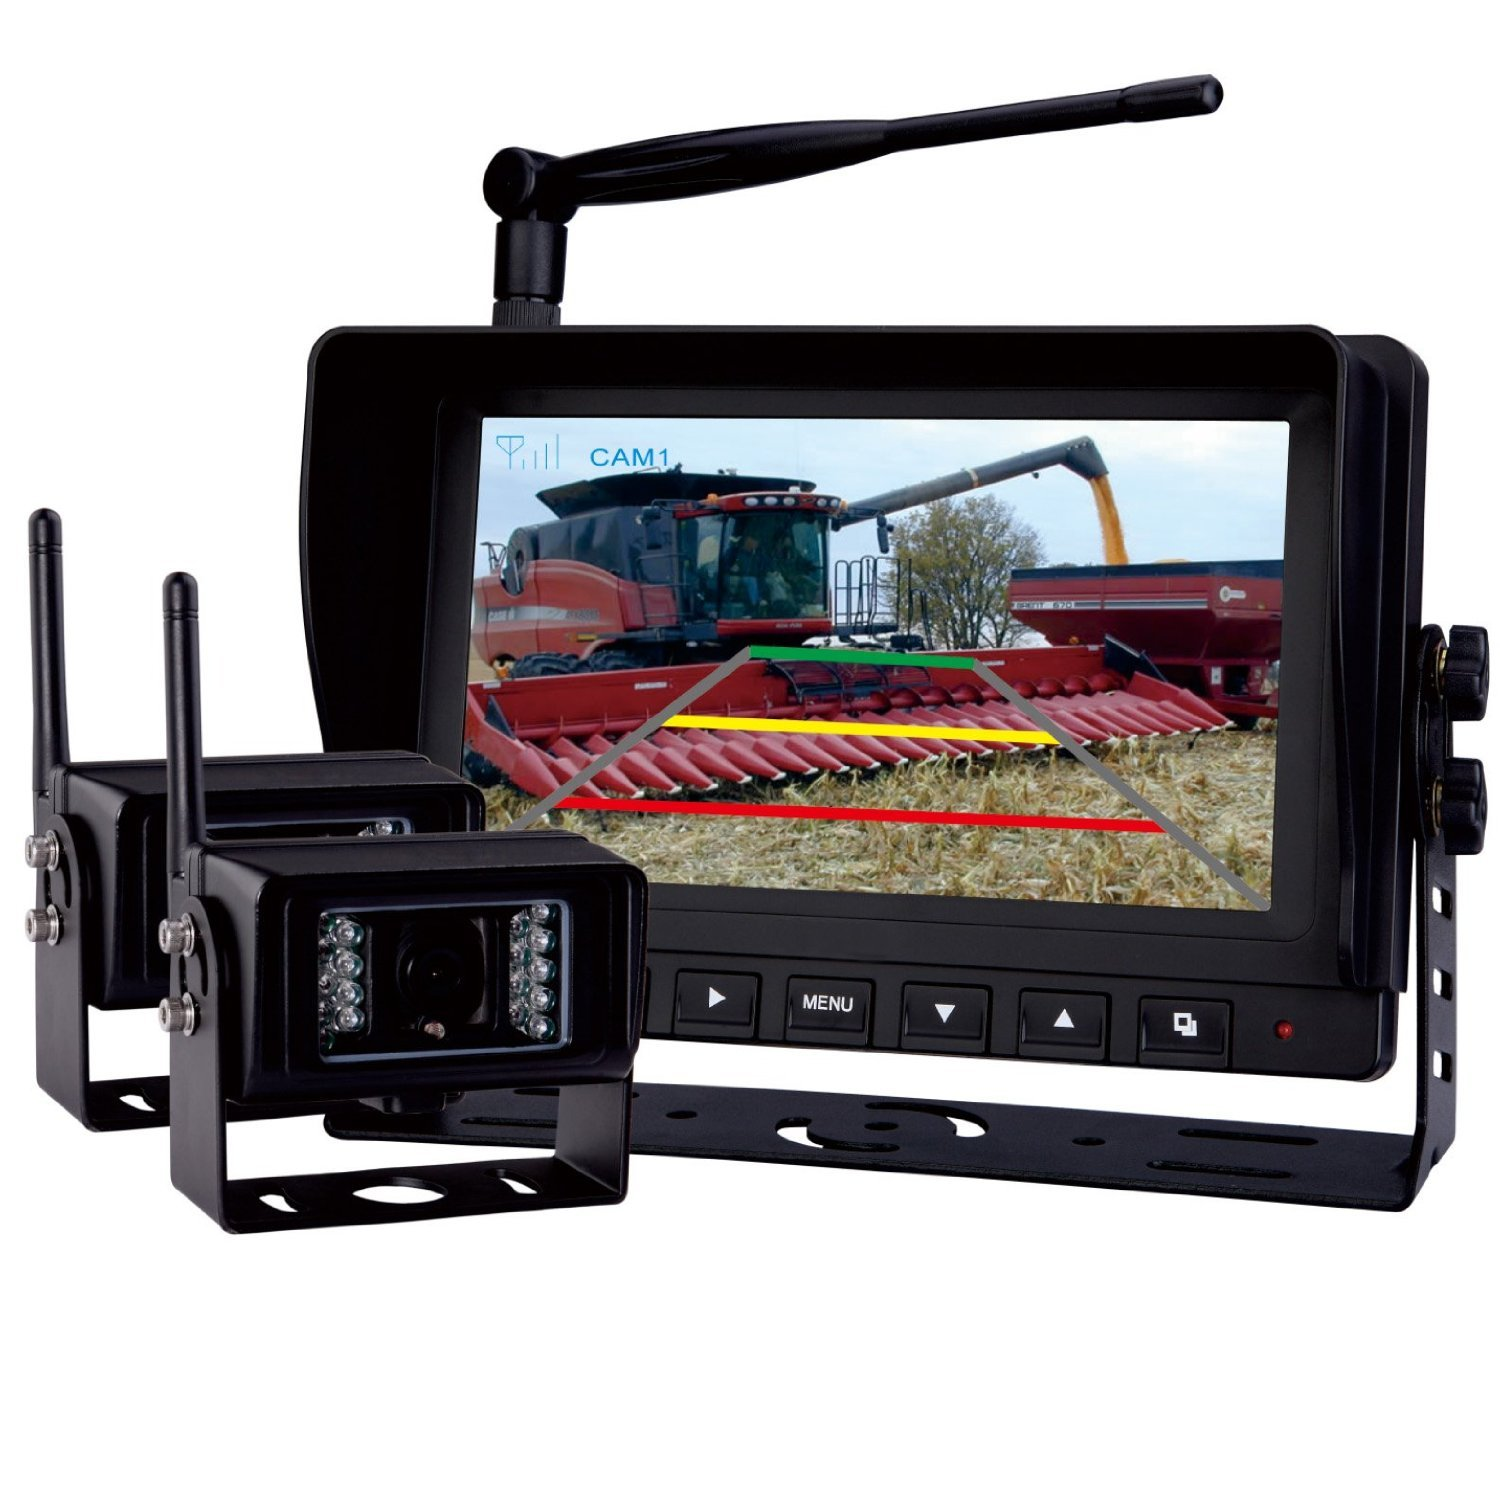 Rear View Backup Camera System, 7'' Digital Wireless Split LCD Monitor with Two Wireless Waterproof Ir Color Cameras for Excavator, Cement Truck, Farm Tractor, Trailer, 5th Wheel, Rv Camper, Heavy Truck